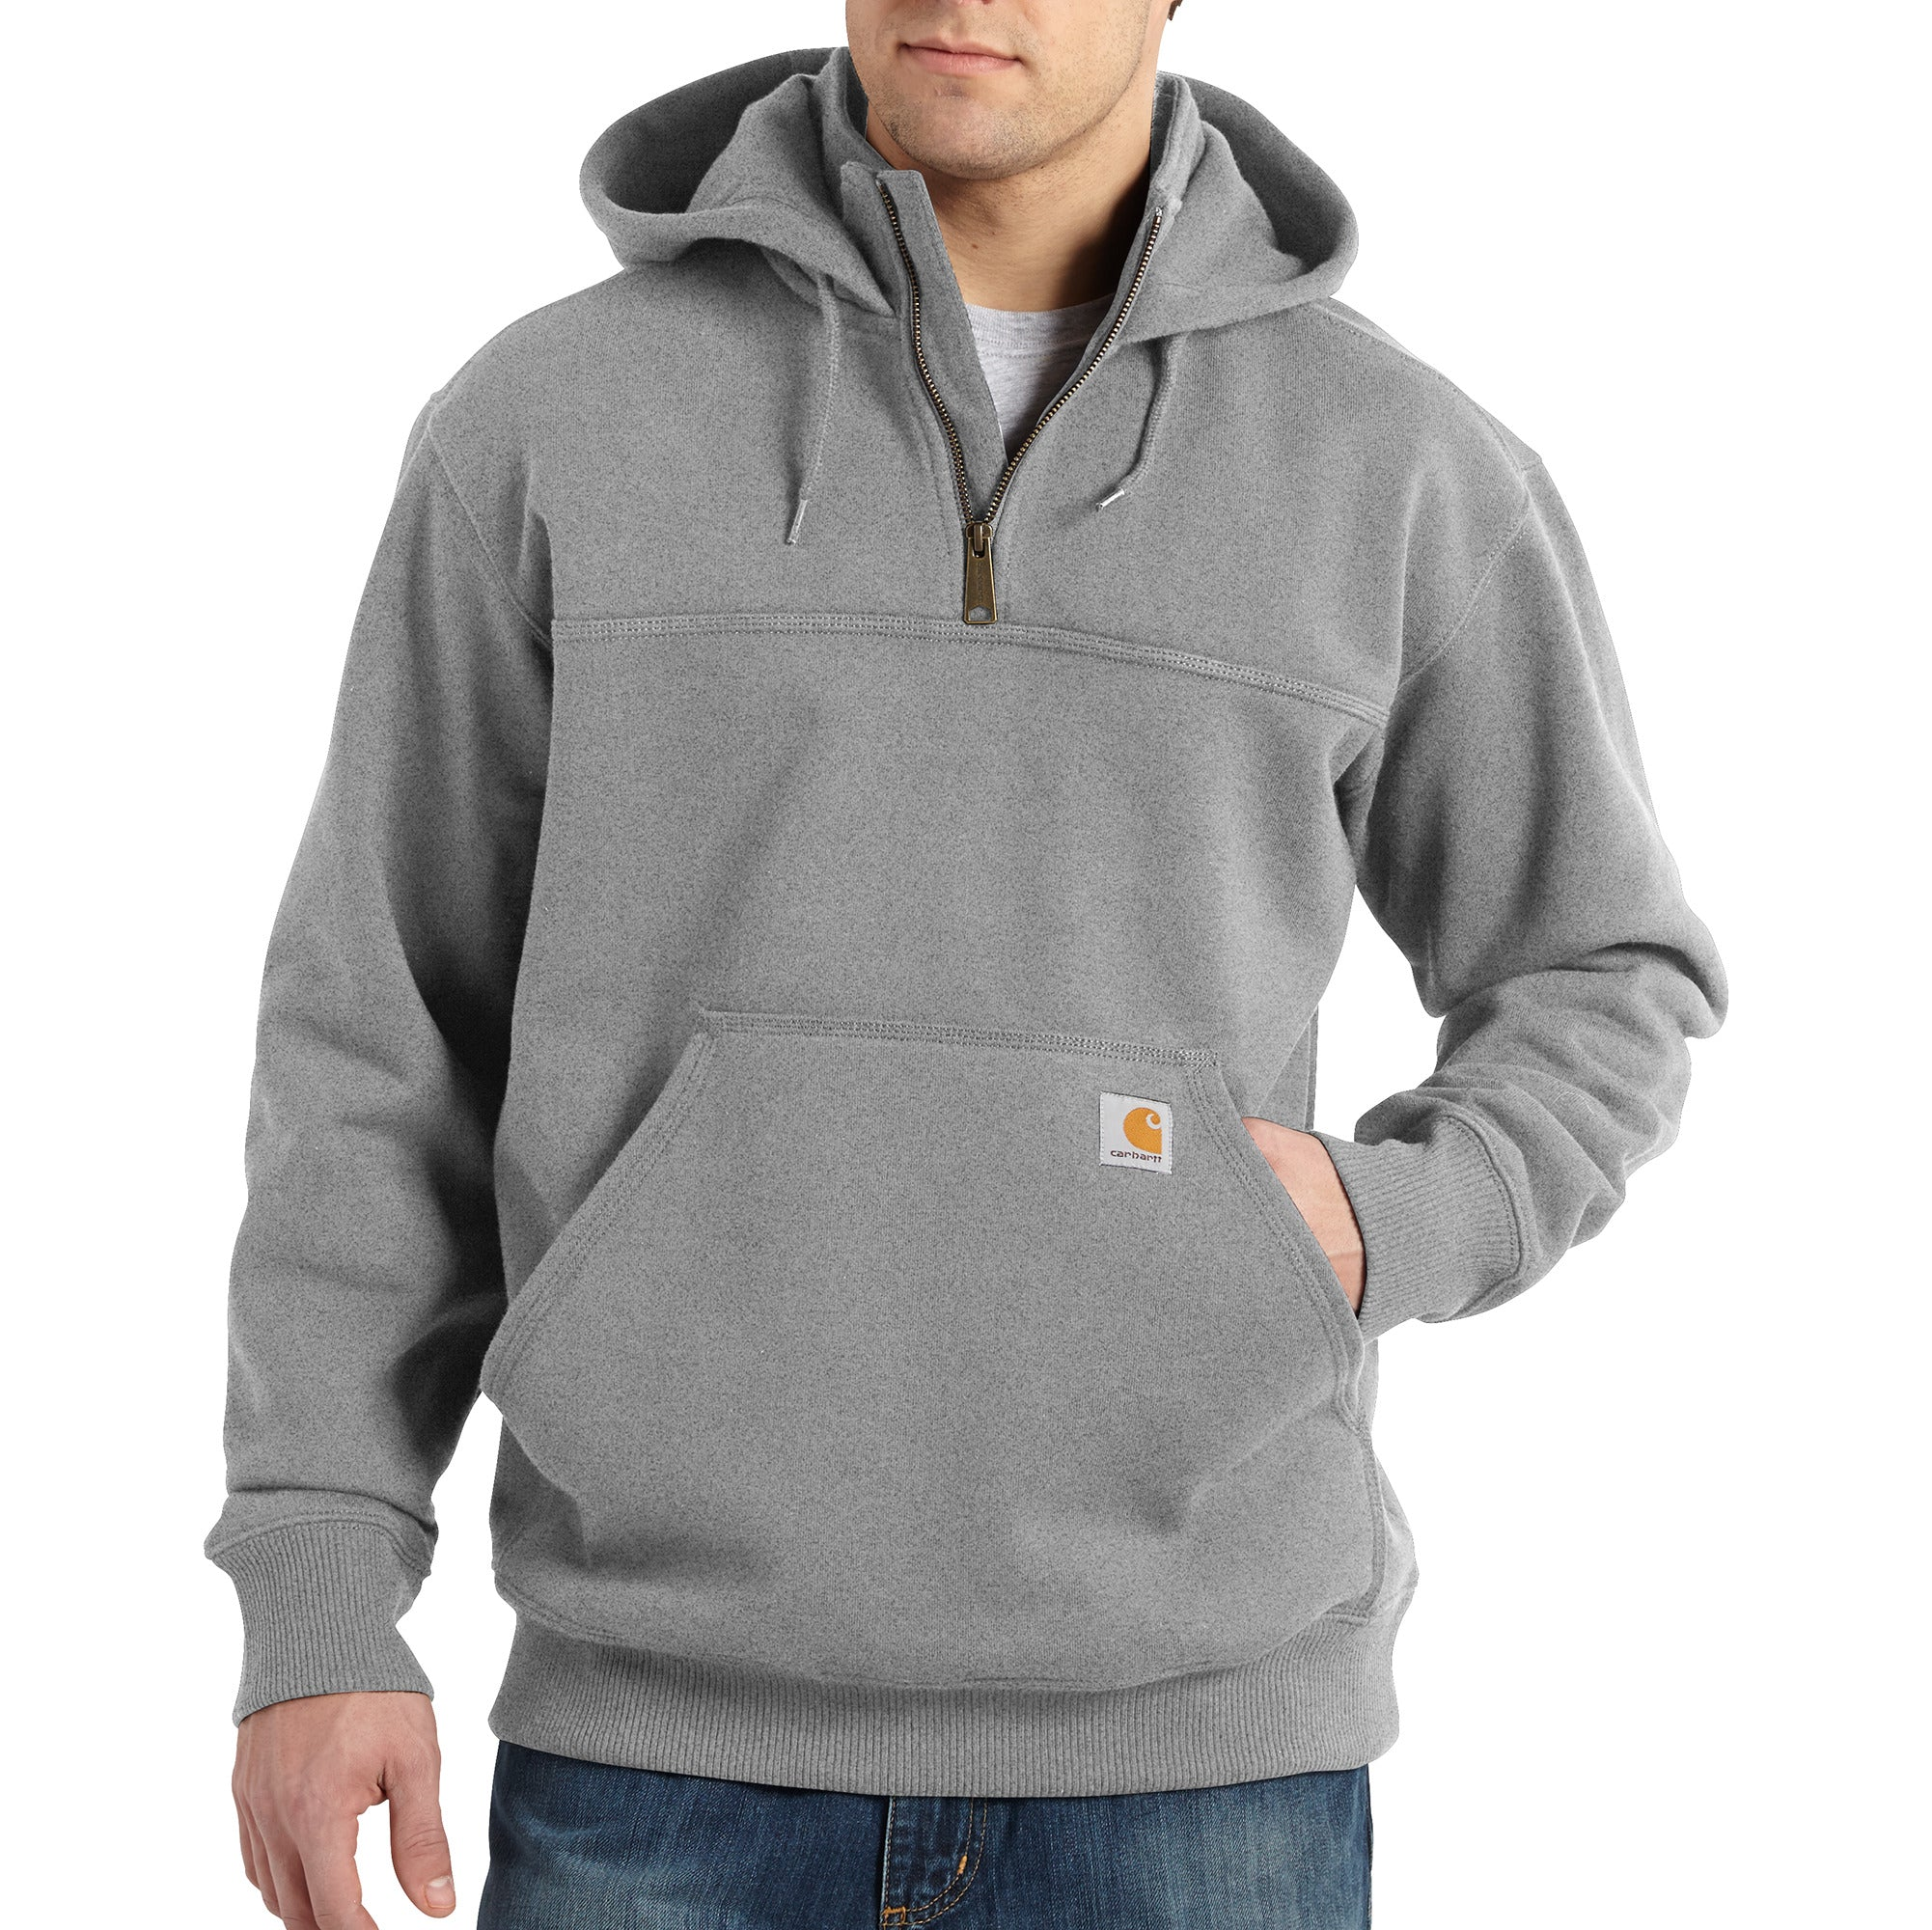 'Carhartt' Men's Rain Defender Paxton Heavyweight 1/4 Zip Hoodie - Heather Gray